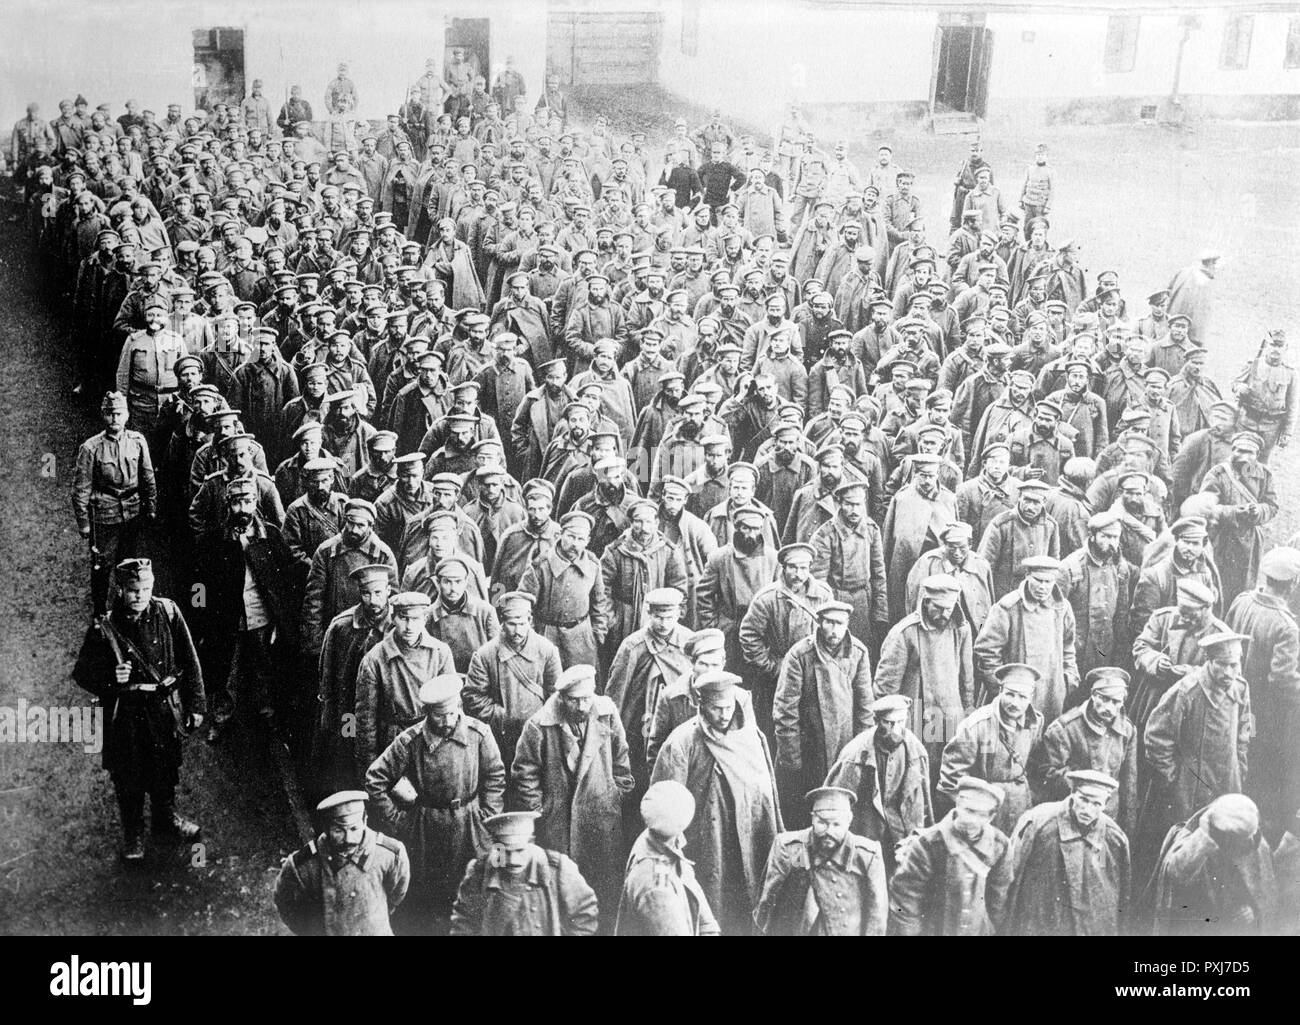 Russian prisoners in Przemysl, circa 1914 - 1915 Russian soldiers taken prisoner by the Austro-Hungarian army at Przemysl Fortress, Przemysl, Austro-Hungarian Empire, now in Poland during World War I - Stock Image